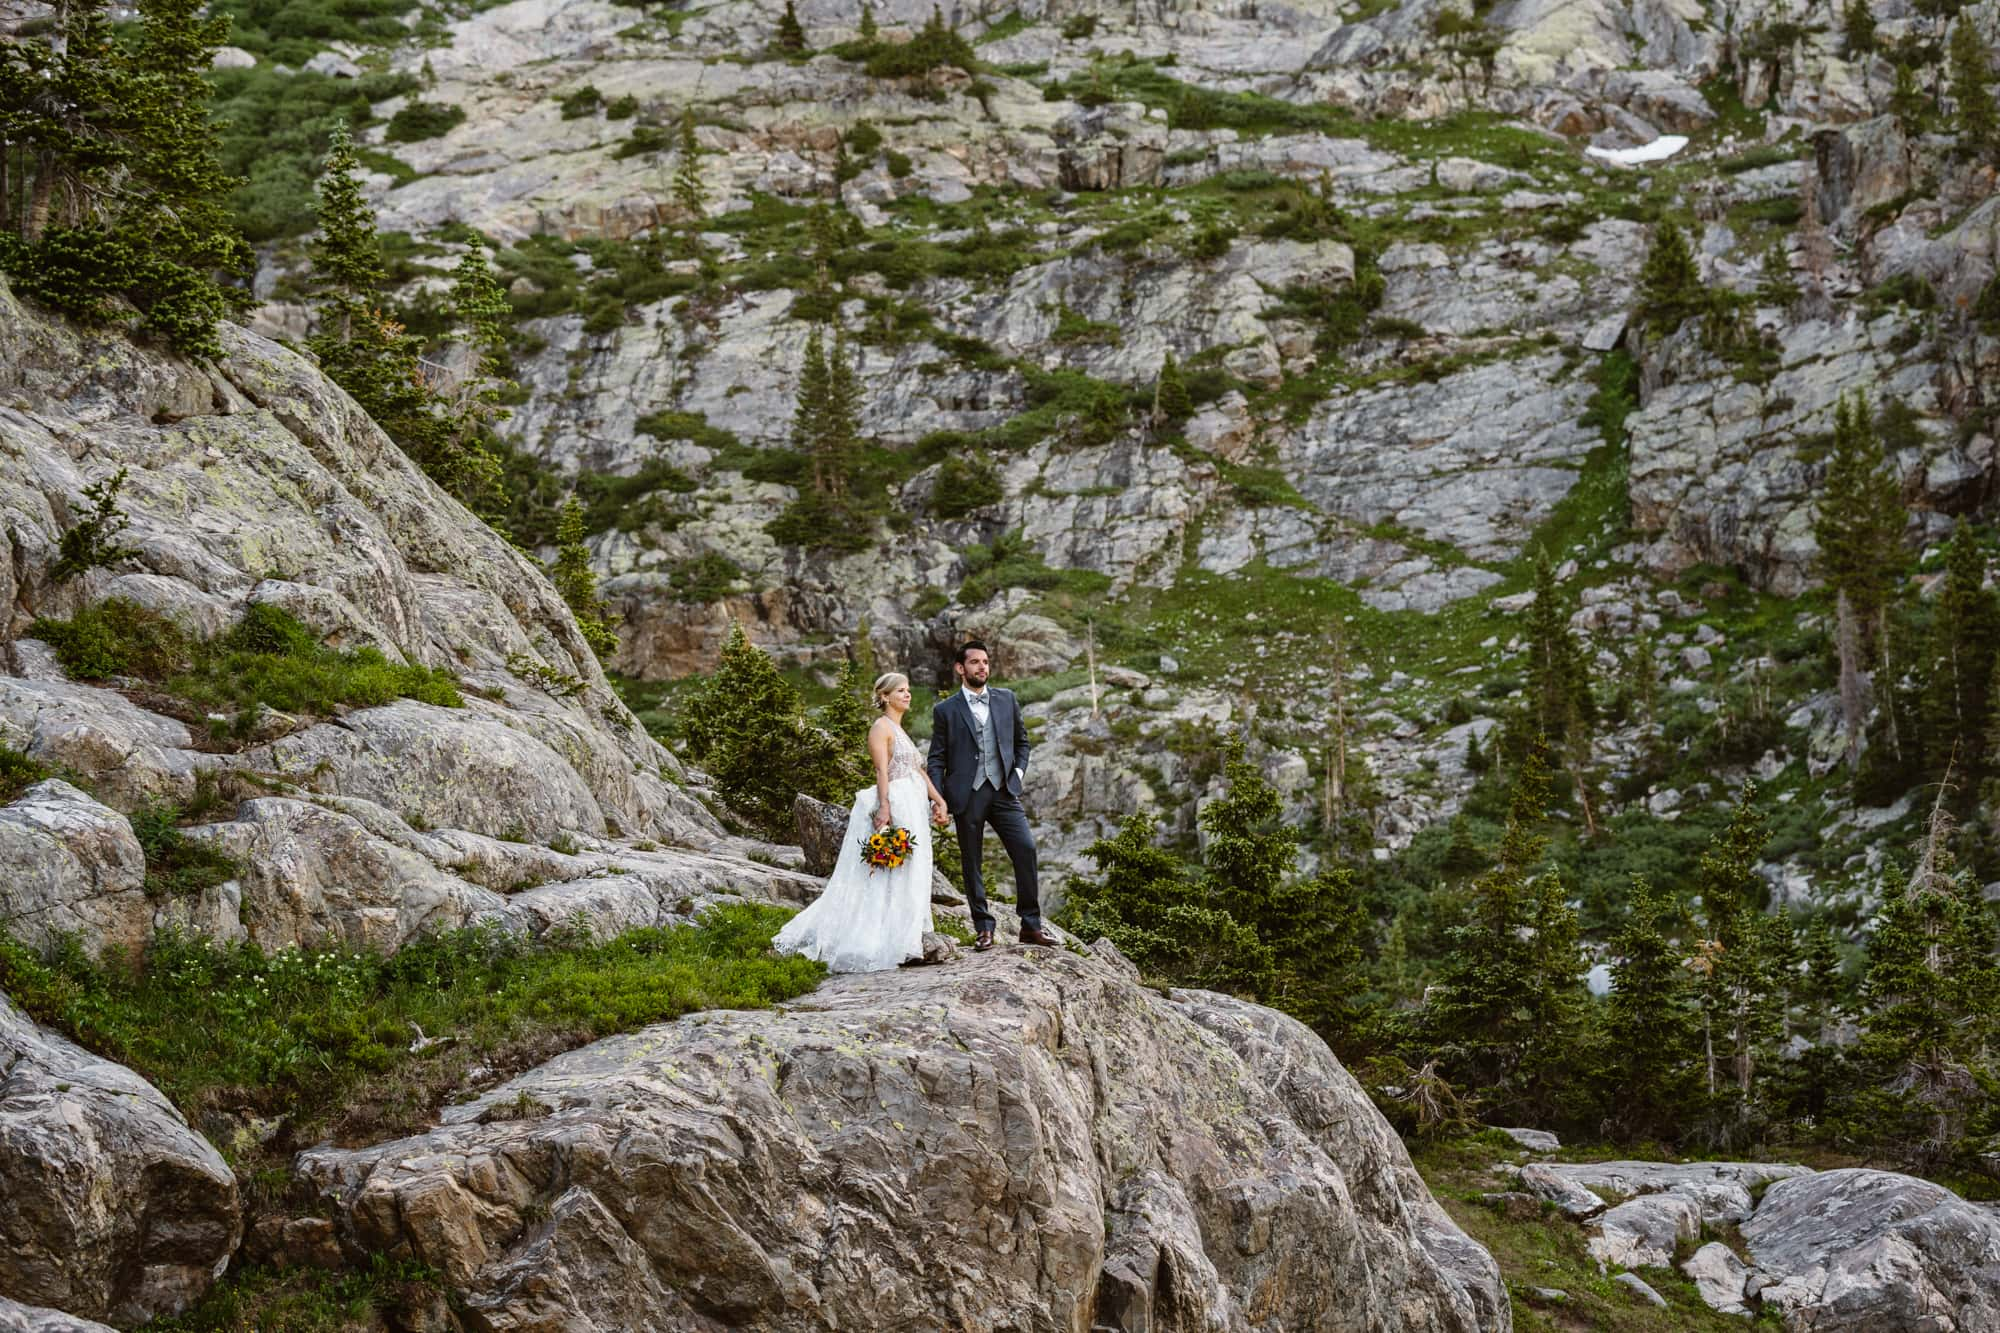 Bride and Groom Vail Colorado Elopement